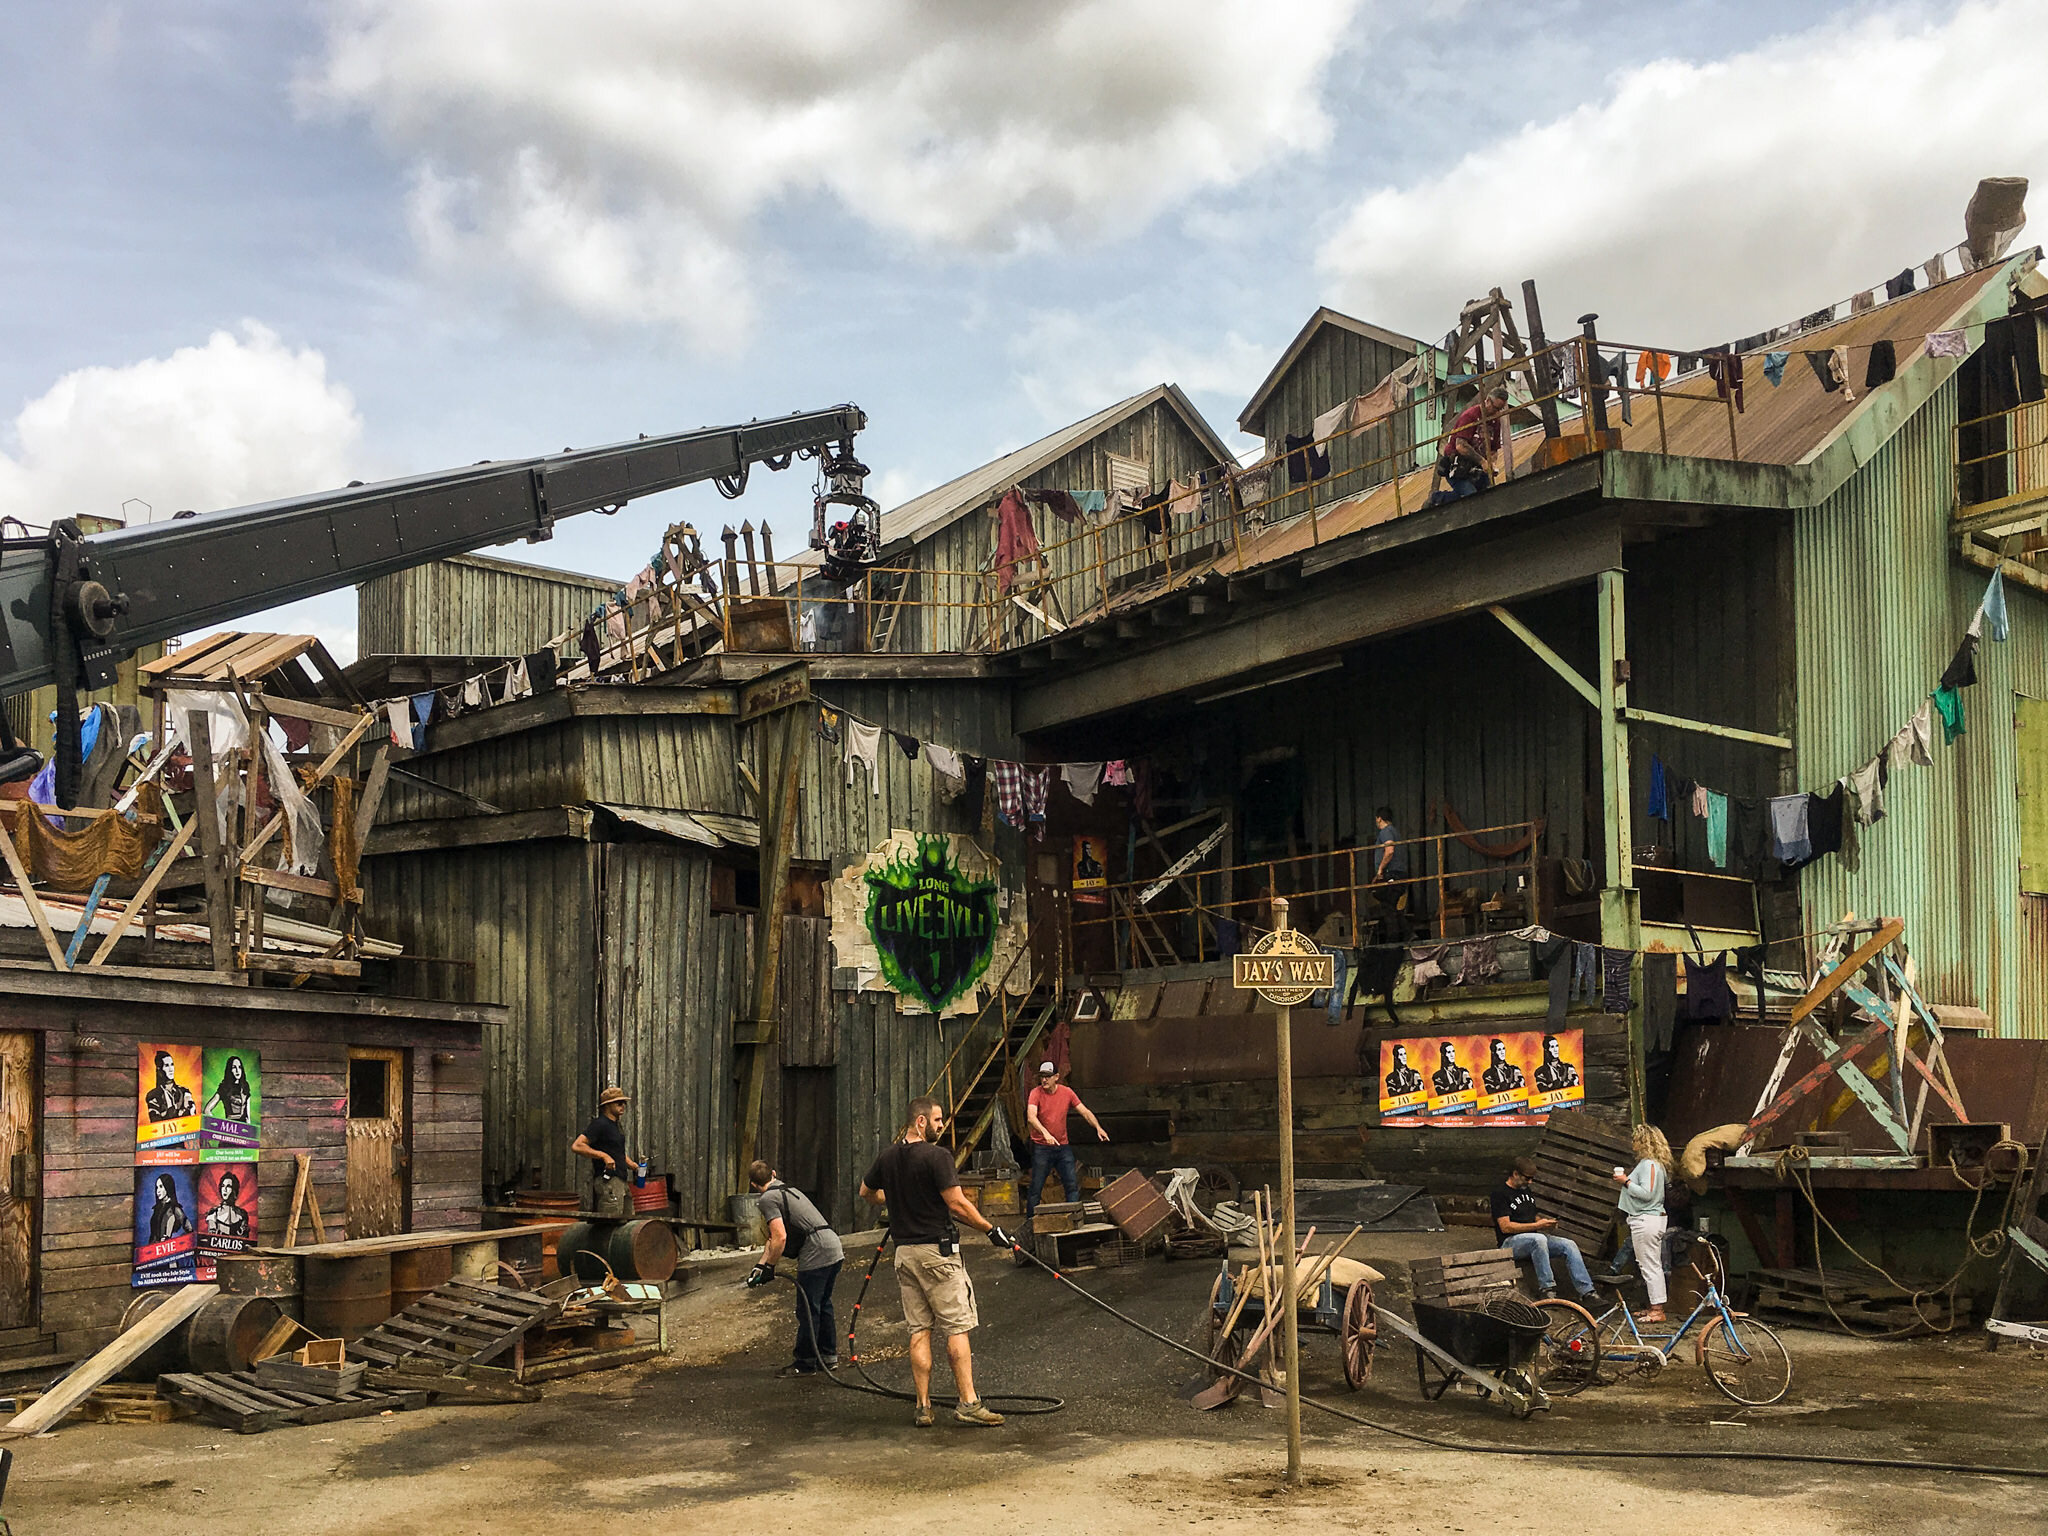 The Isle of the Lost is the Alcatraz-like prison island where all the classic Disney villains, their children and their hench-people live. Descendants 3 opens on this set, where the children of the Isle learn they've been granted a chance to go to school in Auradon.